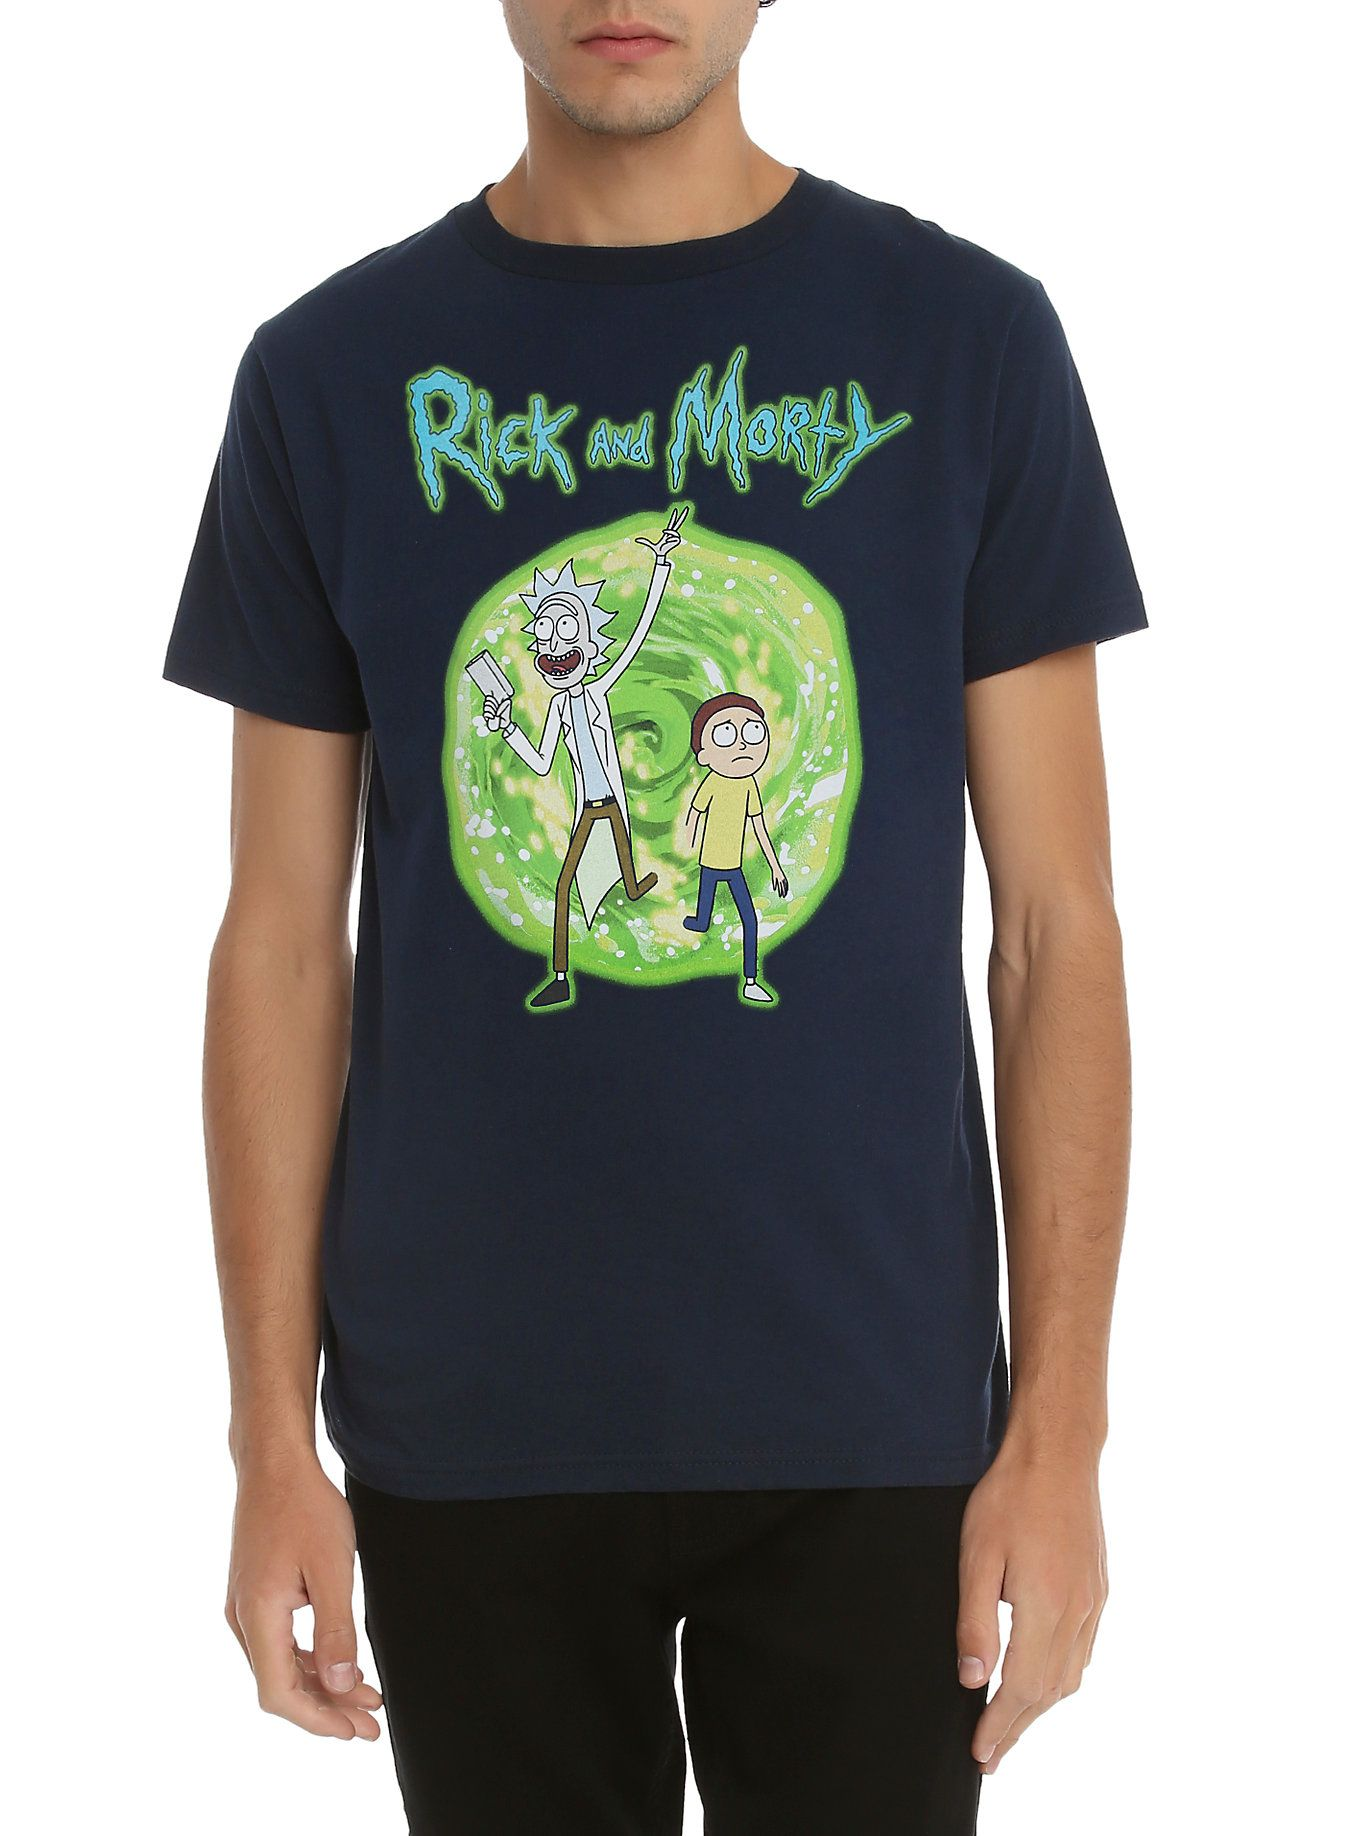 3baa4fd678f5a4 Rick And Morty Merch Uk